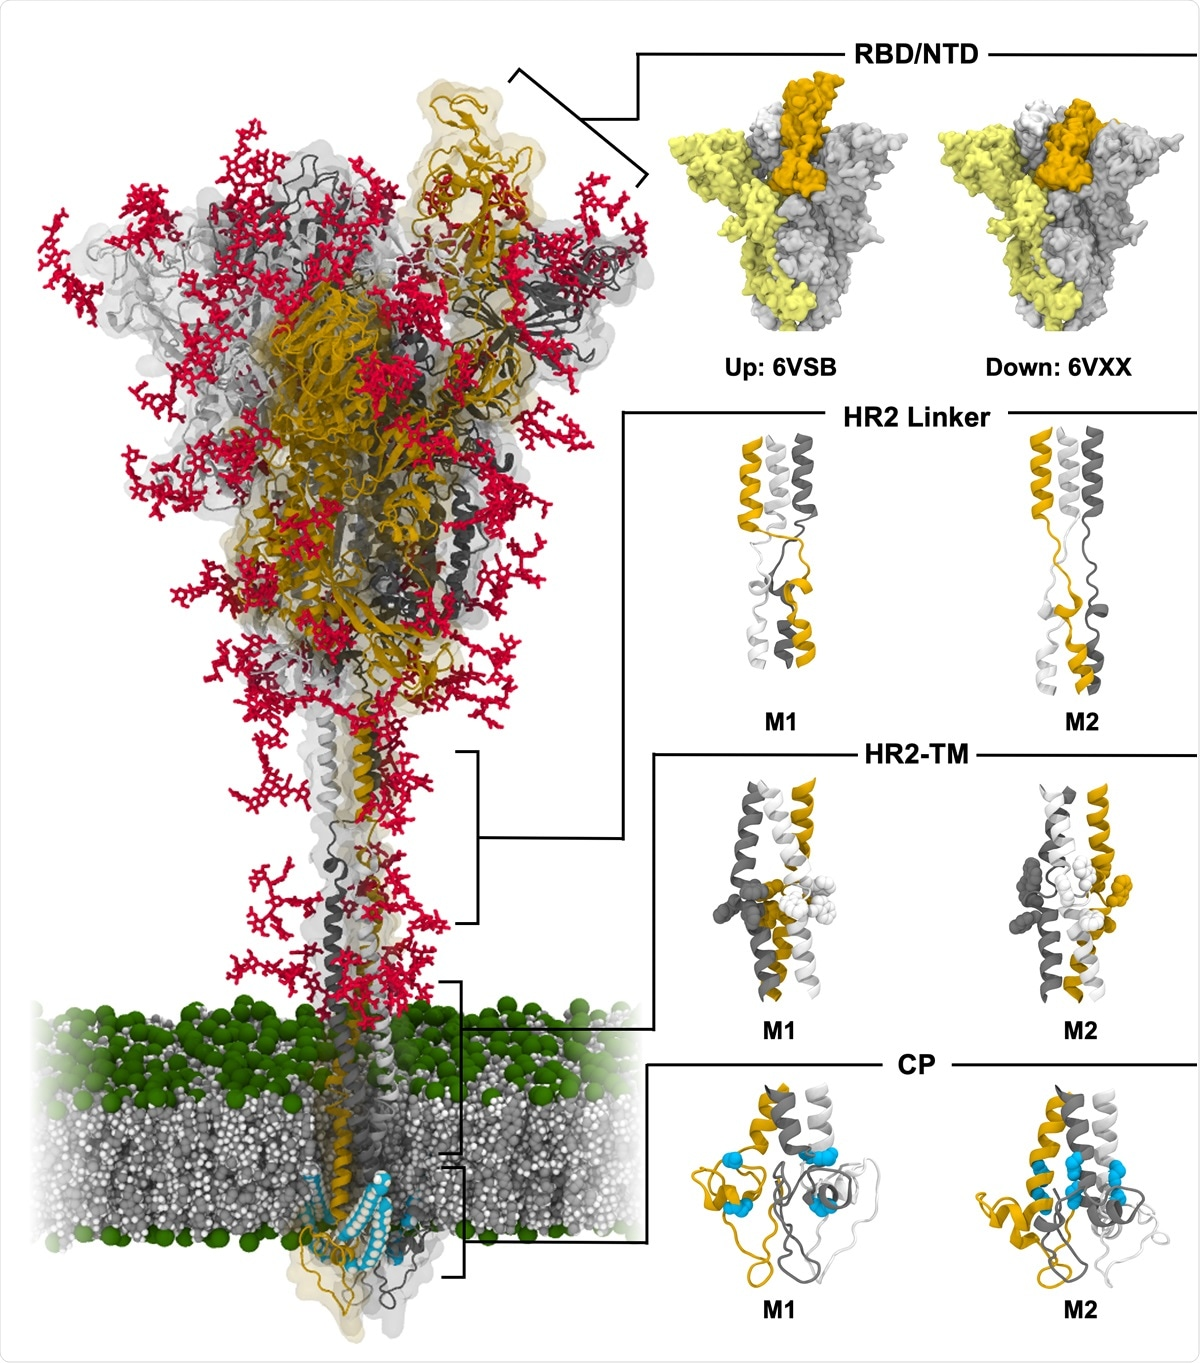 Model structure of fully-glycosylated full-length SARS-CoV-2 S protein in a viral membrane. A model structure of SARS-CoV-2 S protein is shown on the left panel. Two models for RBD/NTD, HR2 linker, HR2-TM, and CP are enlarged on the right panel. The three individual chains of S protein are colored in yellow, gray, and white, respectively, while glycans are represented as red sticks. The palmitoylation sites of S protein are highlighted in cyan. The phosphate, carbon, and hydrogen atoms of the viral membrane are colored in green, gray, and white, respectively. For clarity, water molecules and ions are omitted. All illustrations were created using Visual Molecular Dynamics (VMD)30.